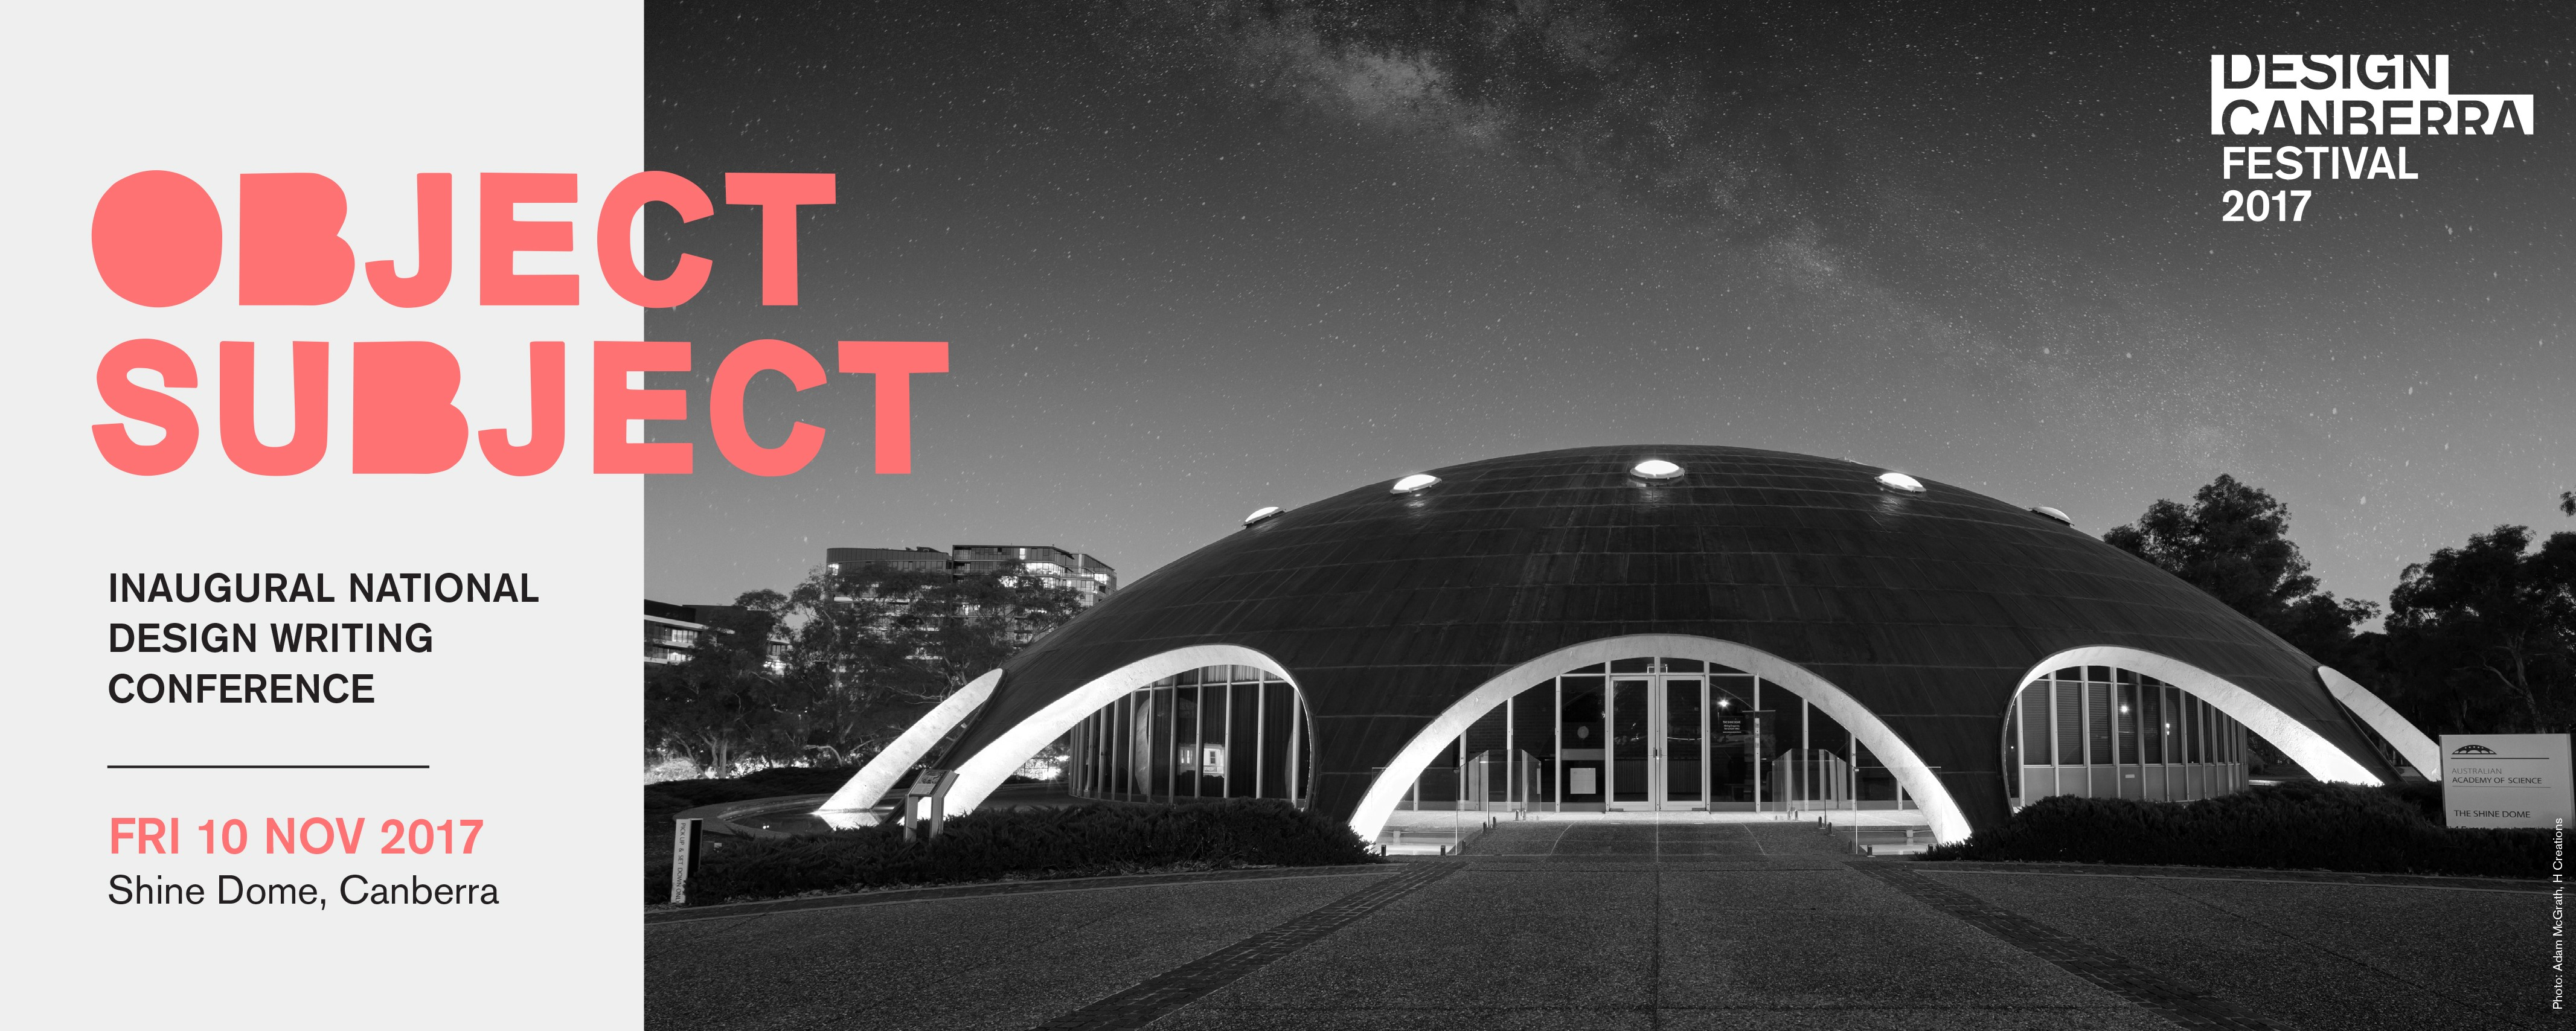 Object Subject Feature Article - The Local Project